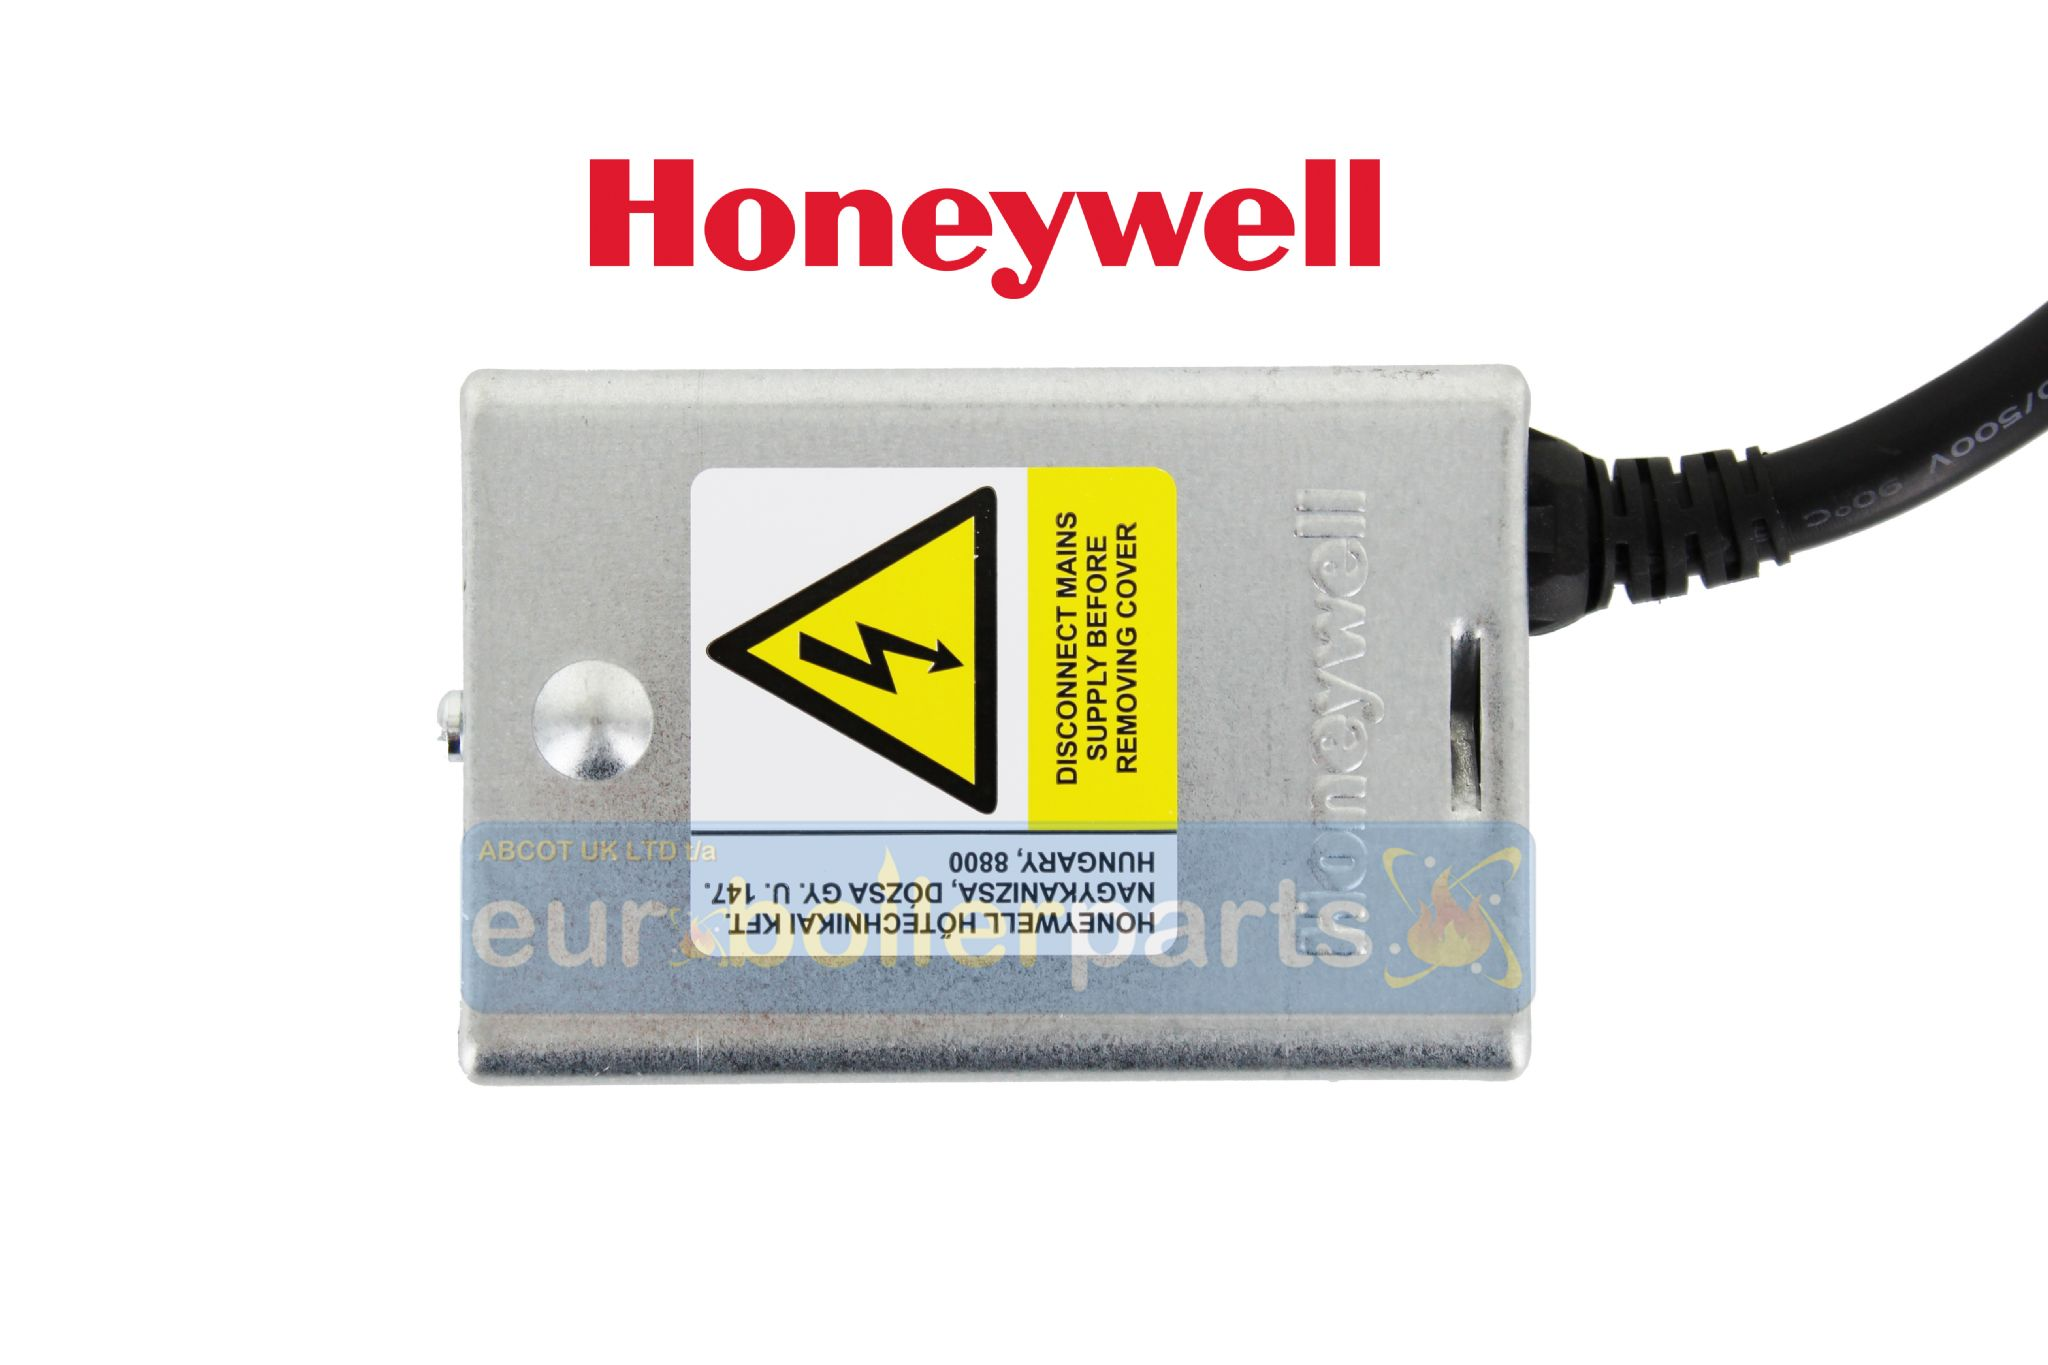 Mv100 Honeywell Zone Valve Power Head Replacement For V4043h1056 How To Install A 40003916 001